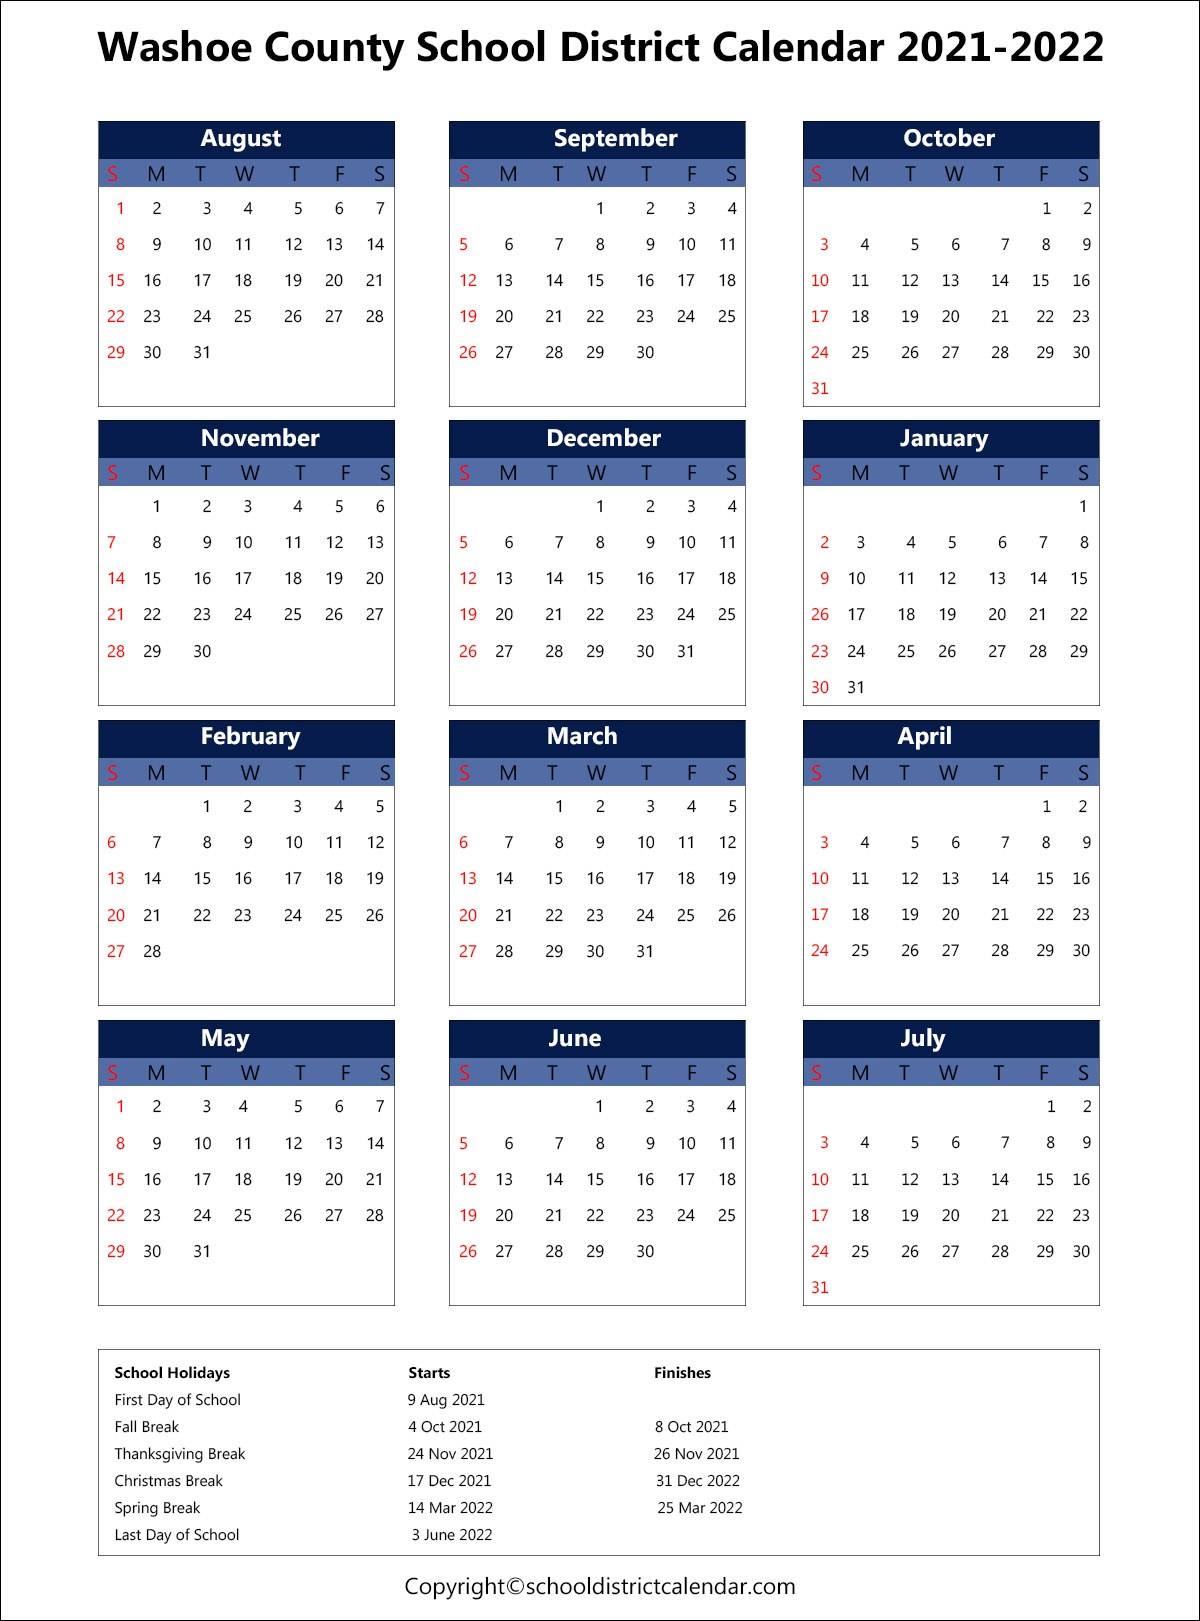 Anchorage School District Calendar 2021-22 Washoe School District Calendar Holidays 2021 2022